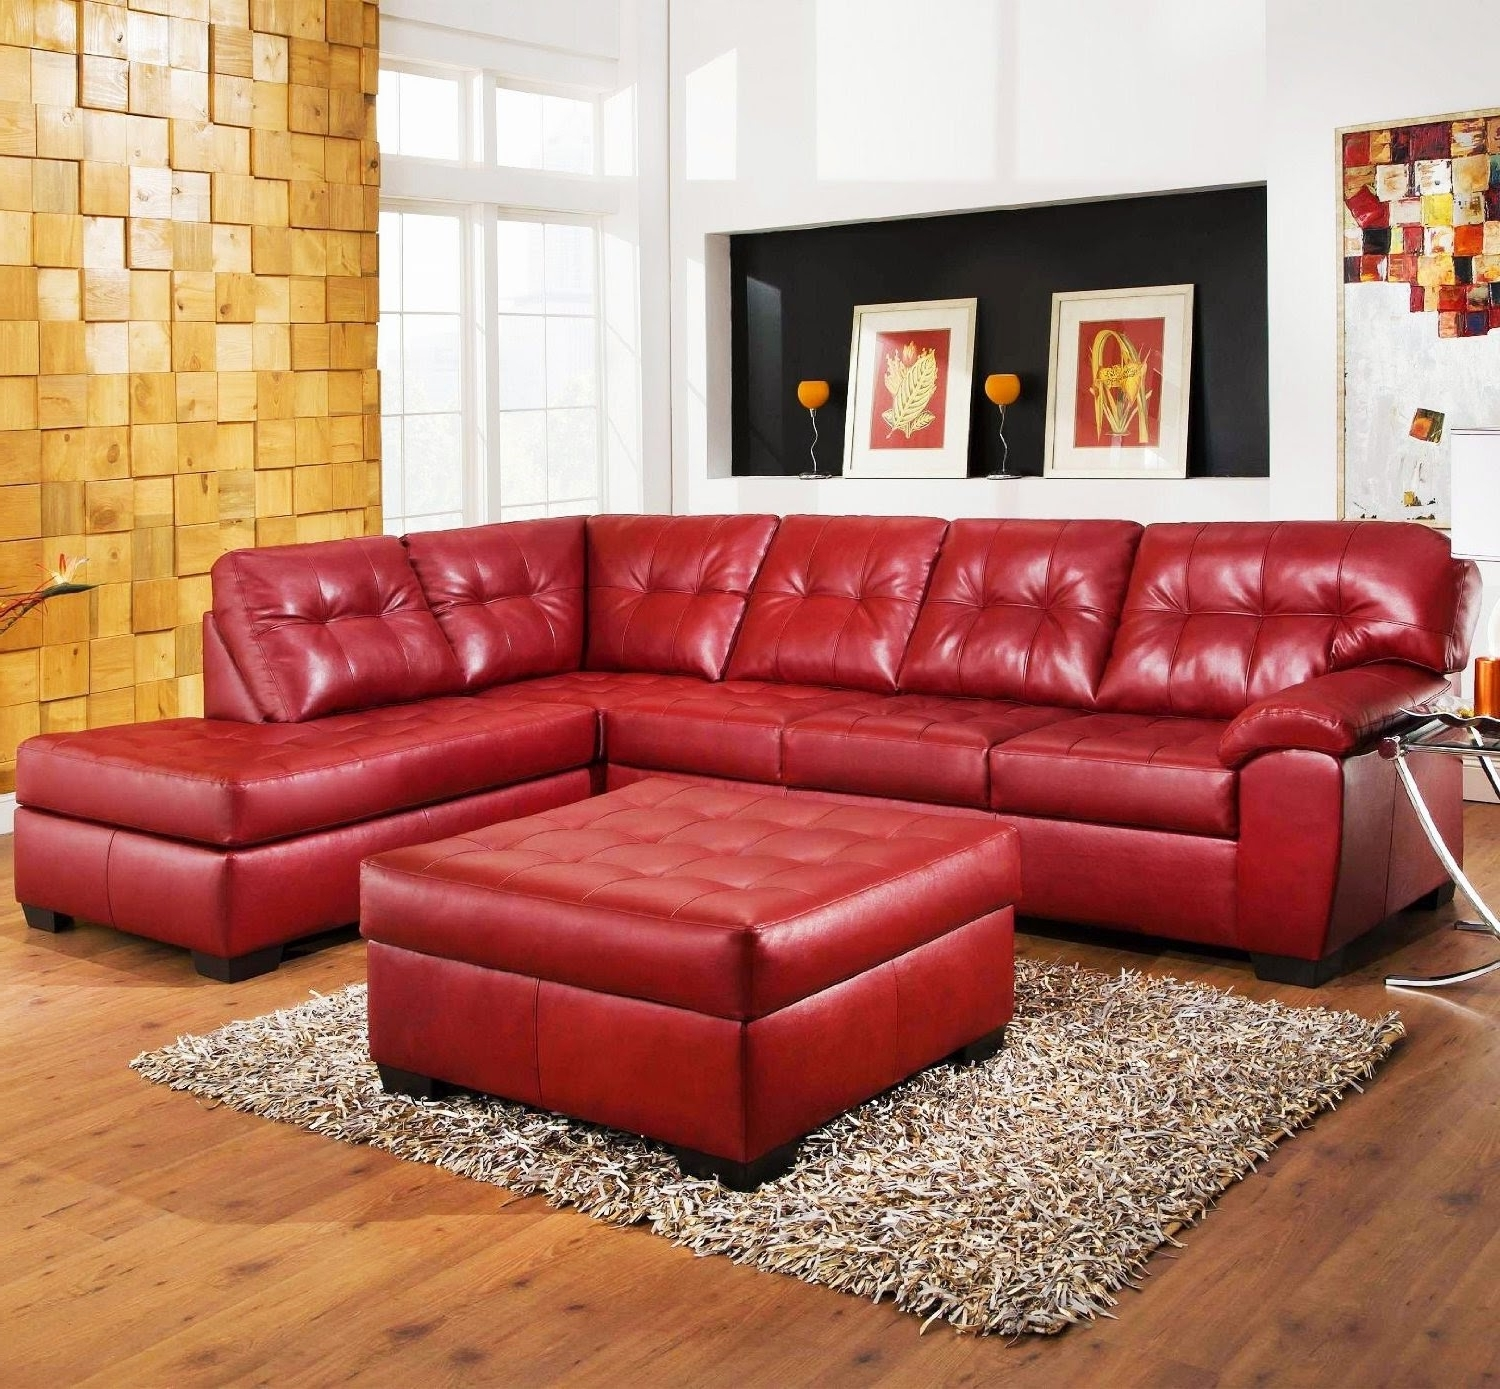 Popular Astonishing Red Couch Leather Pict Of Sofa Concept And Natuzzi With Red Leather Sofas (View 6 of 15)